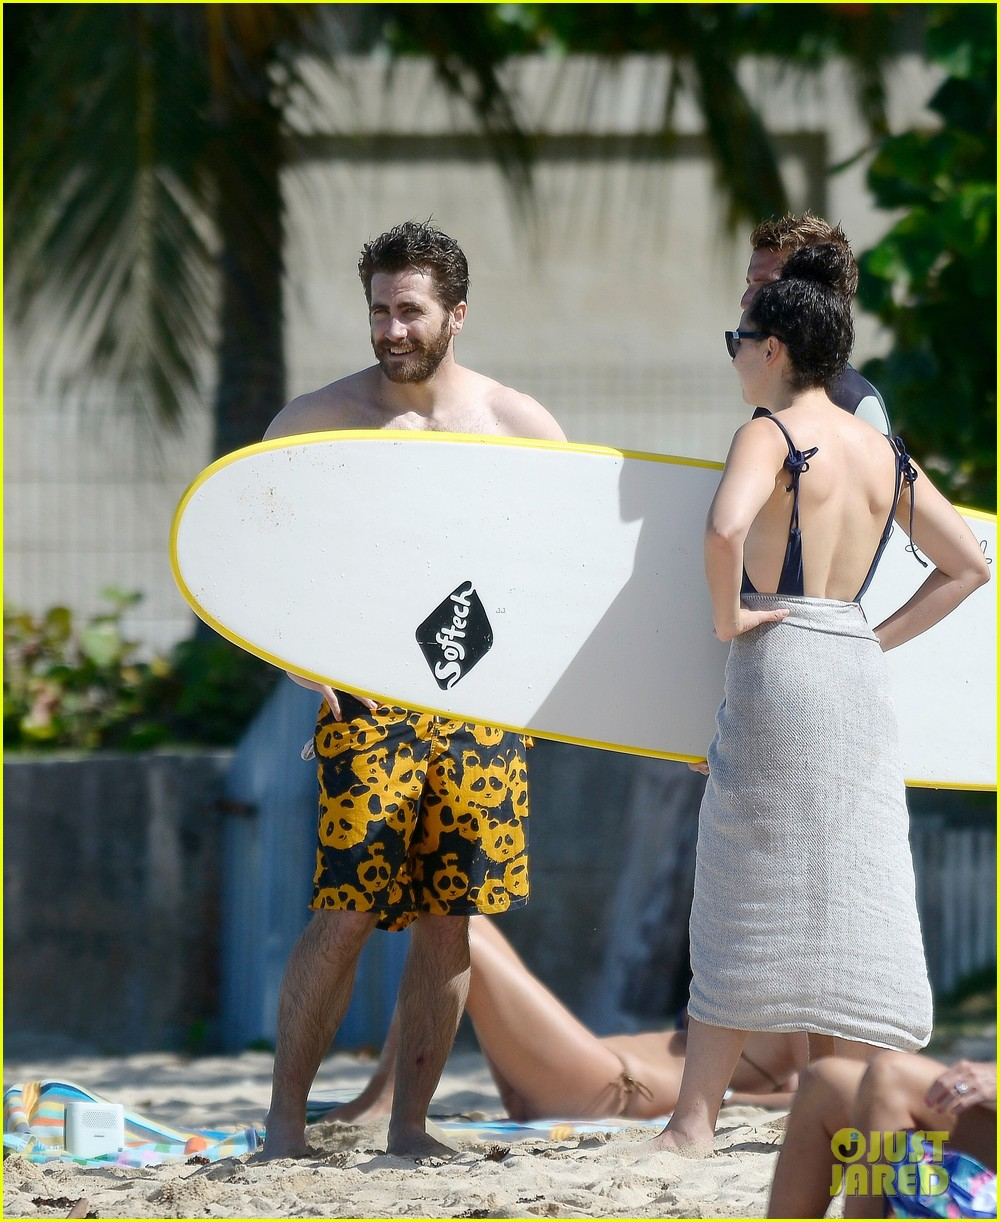 Jake Gyllenhaal Goes Shirtless in St. Barts, Takes a Surfing Lesson ... Jake Gyllenhaal